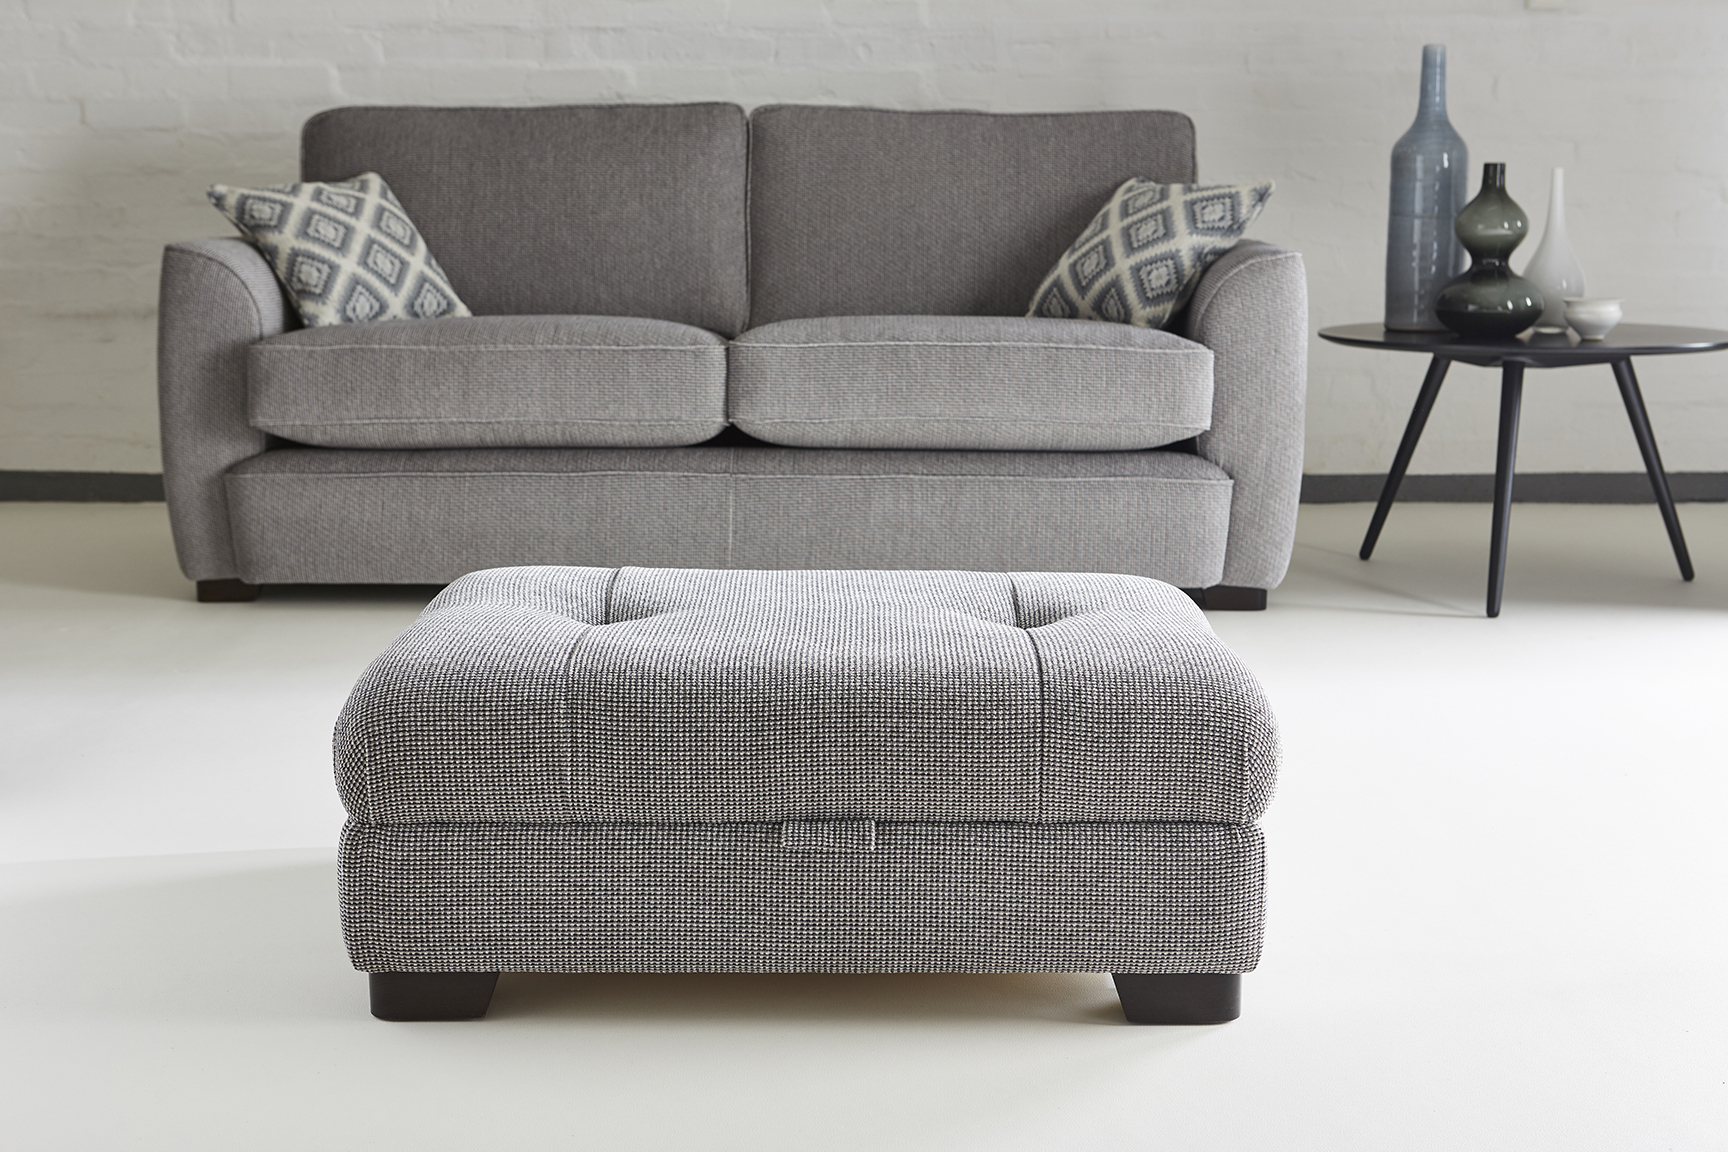 Poppy Footstool Low Res